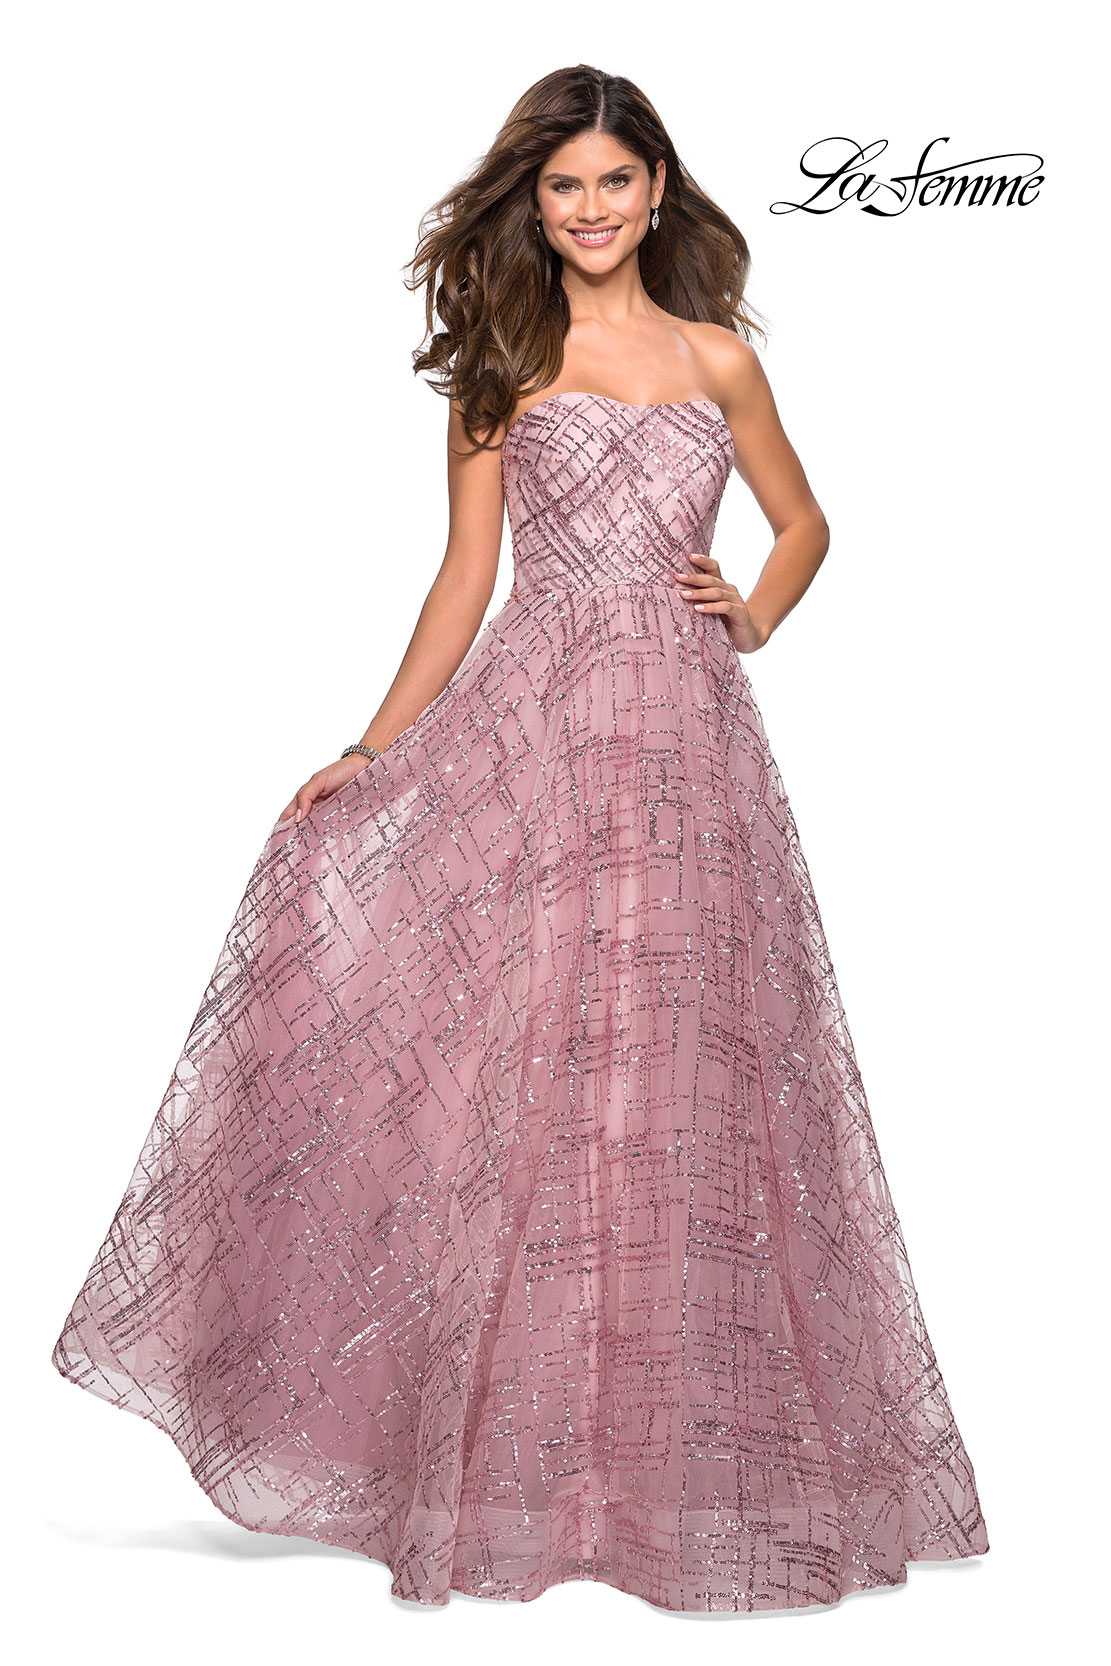 Mauve sequin prom dress with sweetheart neckline